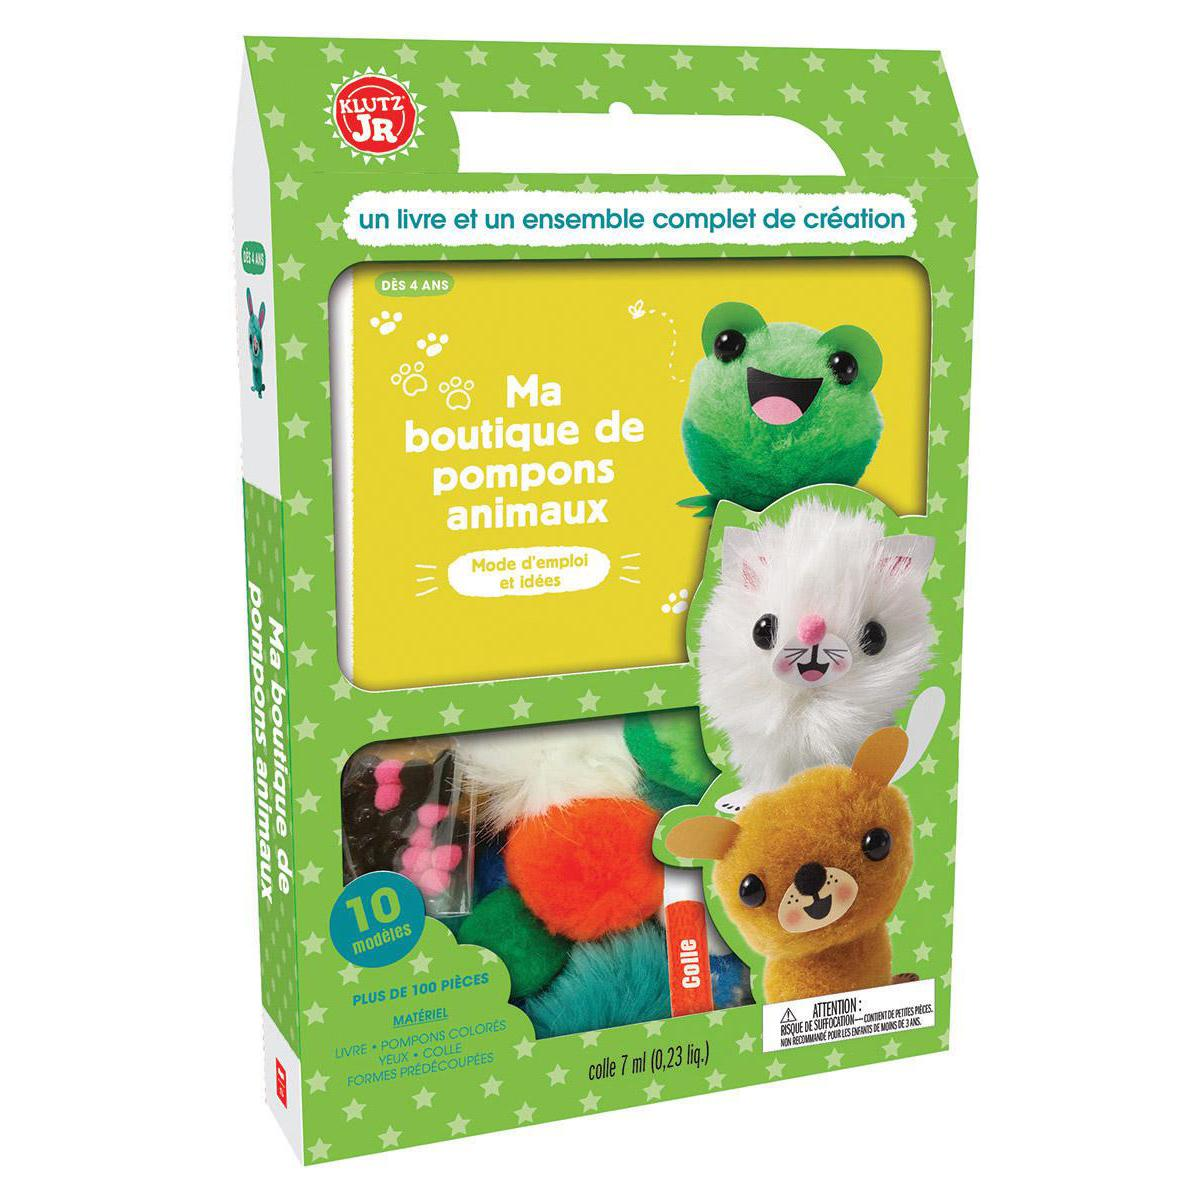 Klutz JR : Ma boutique de pompons animaux